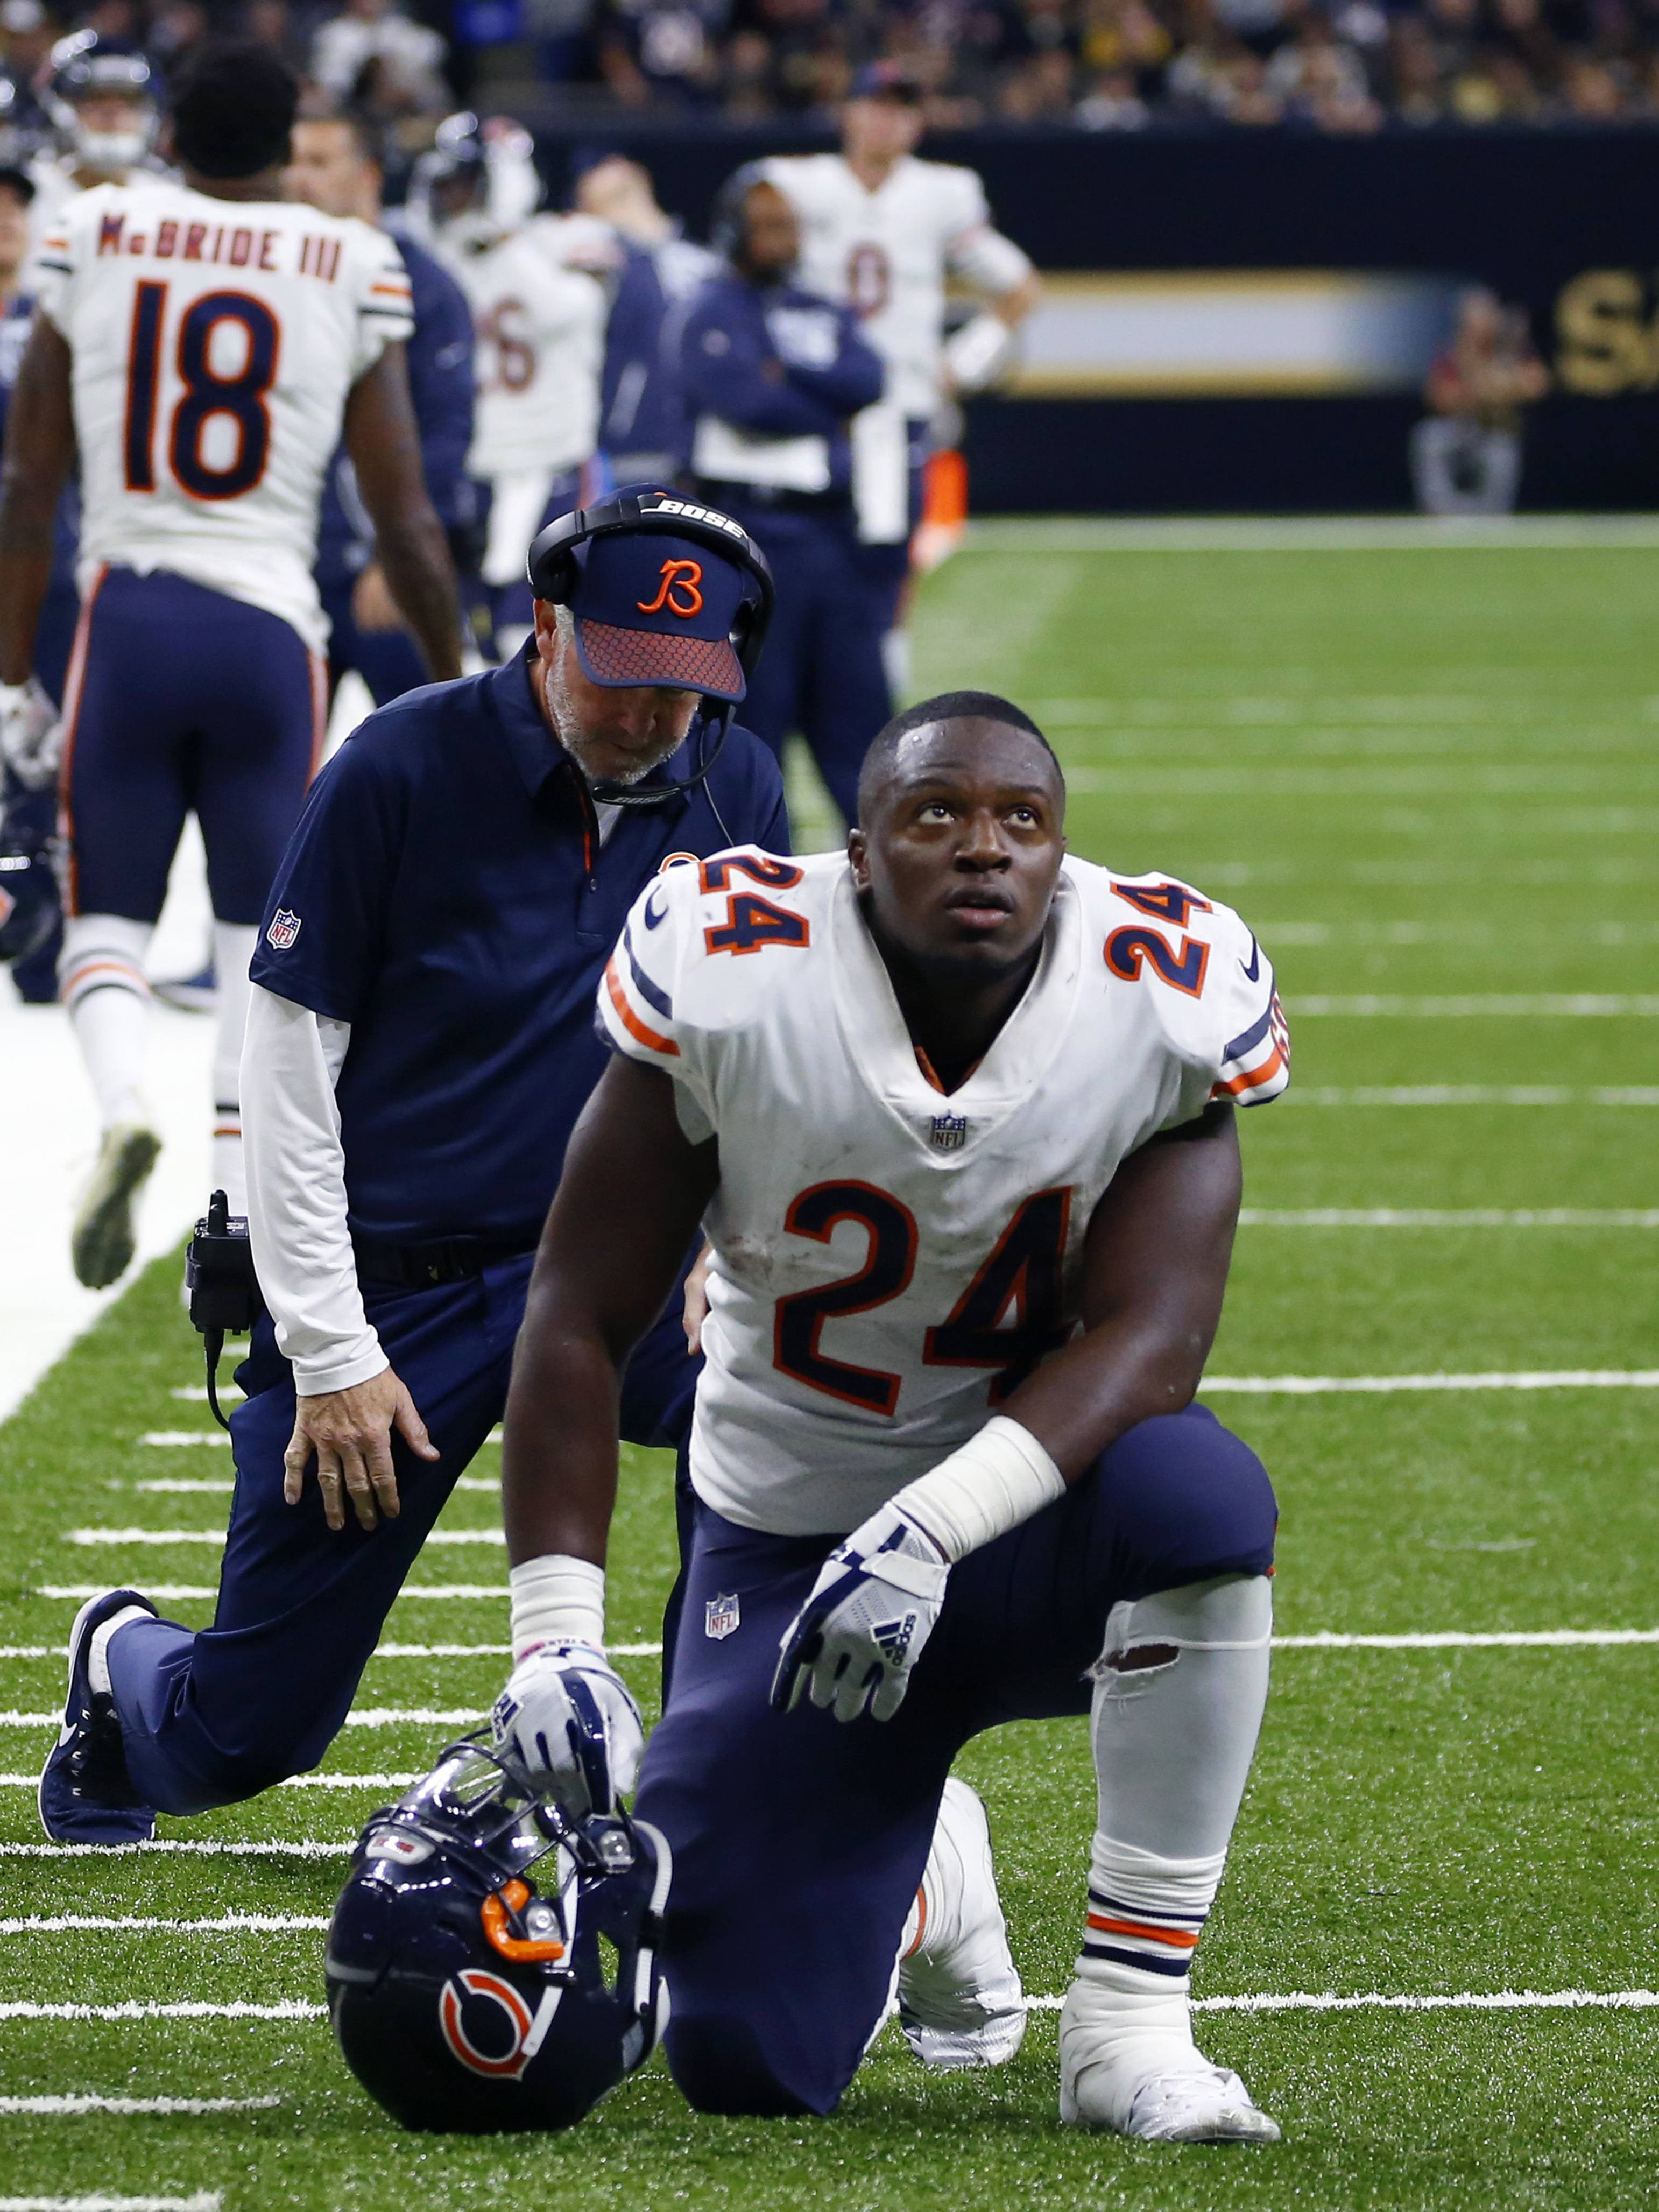 Bears running back Jordan Howard and head coach John Fox kneel in sympathy for injured tight end Zach Miller on Sunday during the second half in New Orleans. Miller hurt his leg on an apparent touchdown reception that was overturned on review.